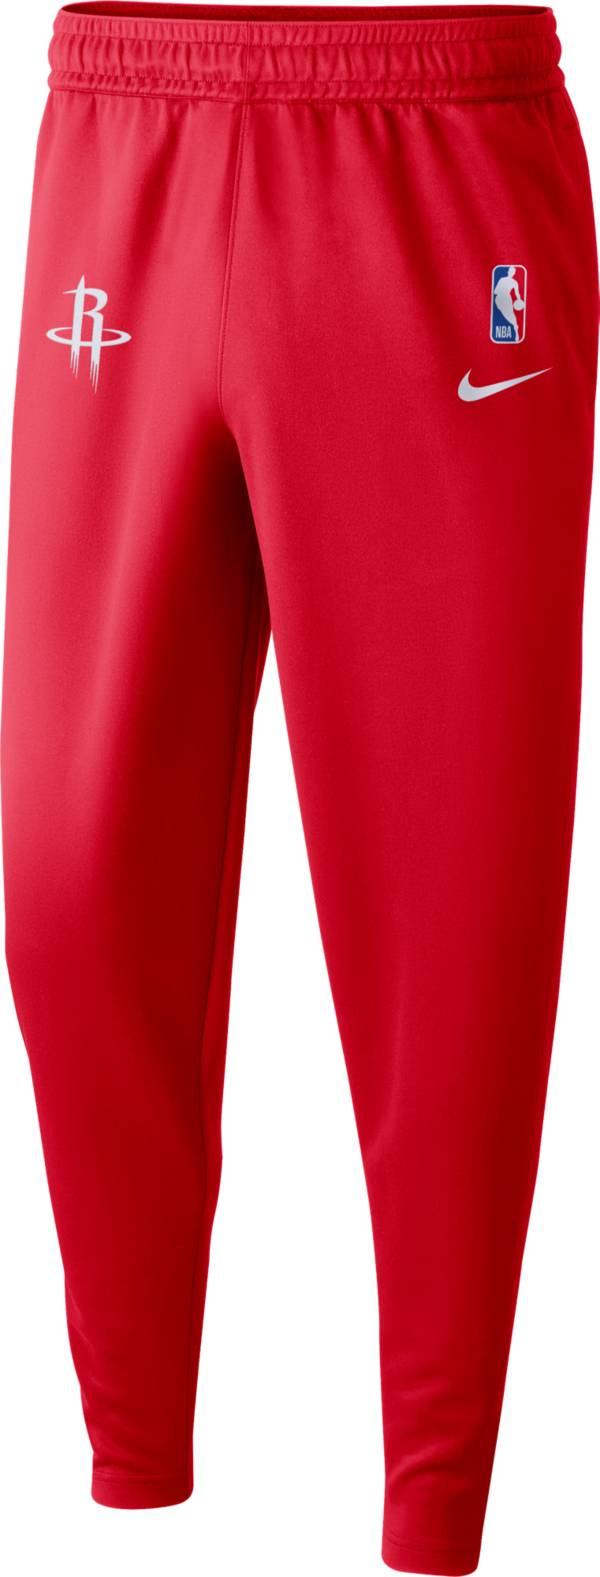 Nike Men's Houston Rockets Dri-FIT Spotlight Pants product image